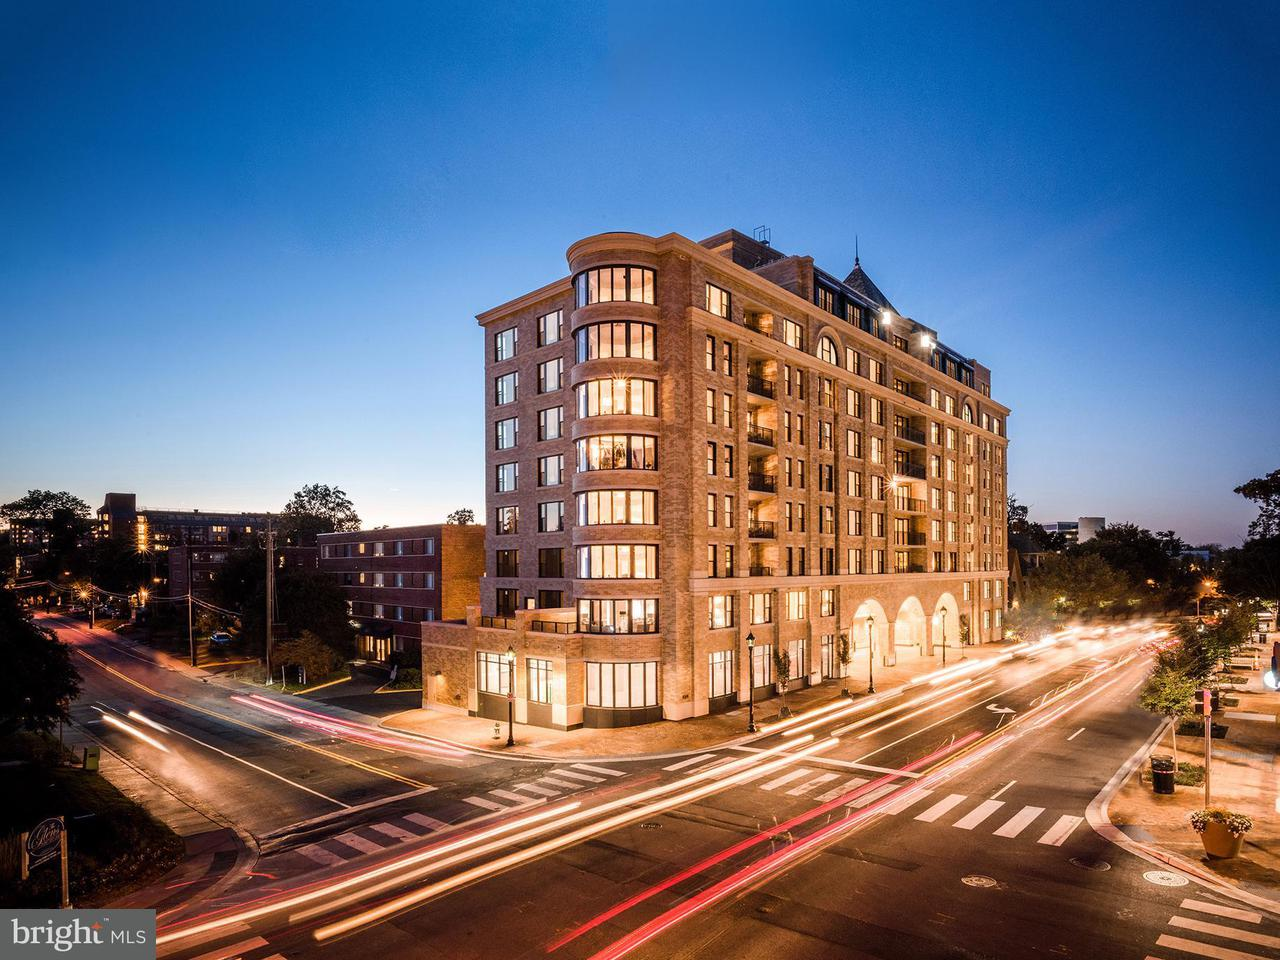 Condominium for Sale at 8302 WOODMONT AVE #603 8302 WOODMONT AVE #603 Bethesda, Maryland 20814 United States